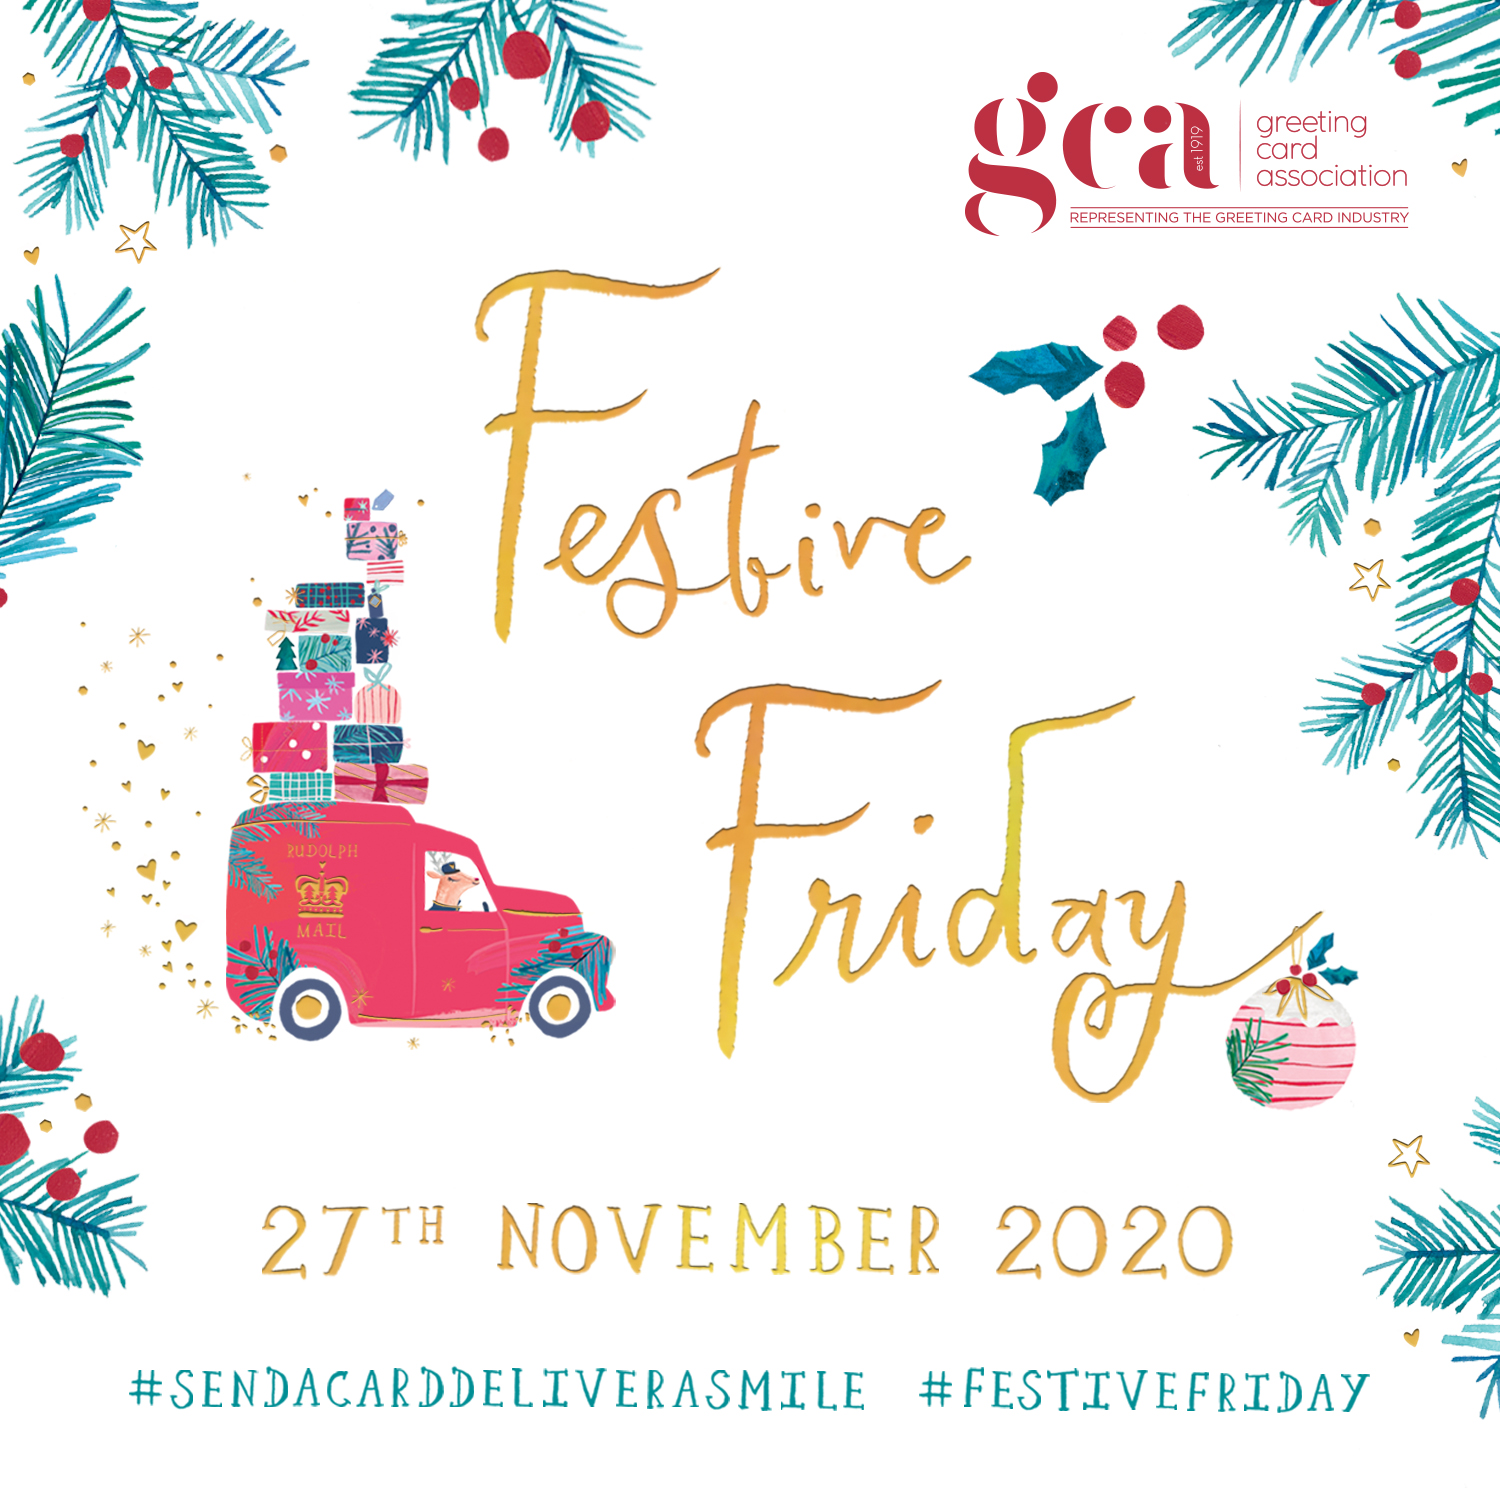 Above: The GCA website hosts a Festive Friday downloadable toolkit.